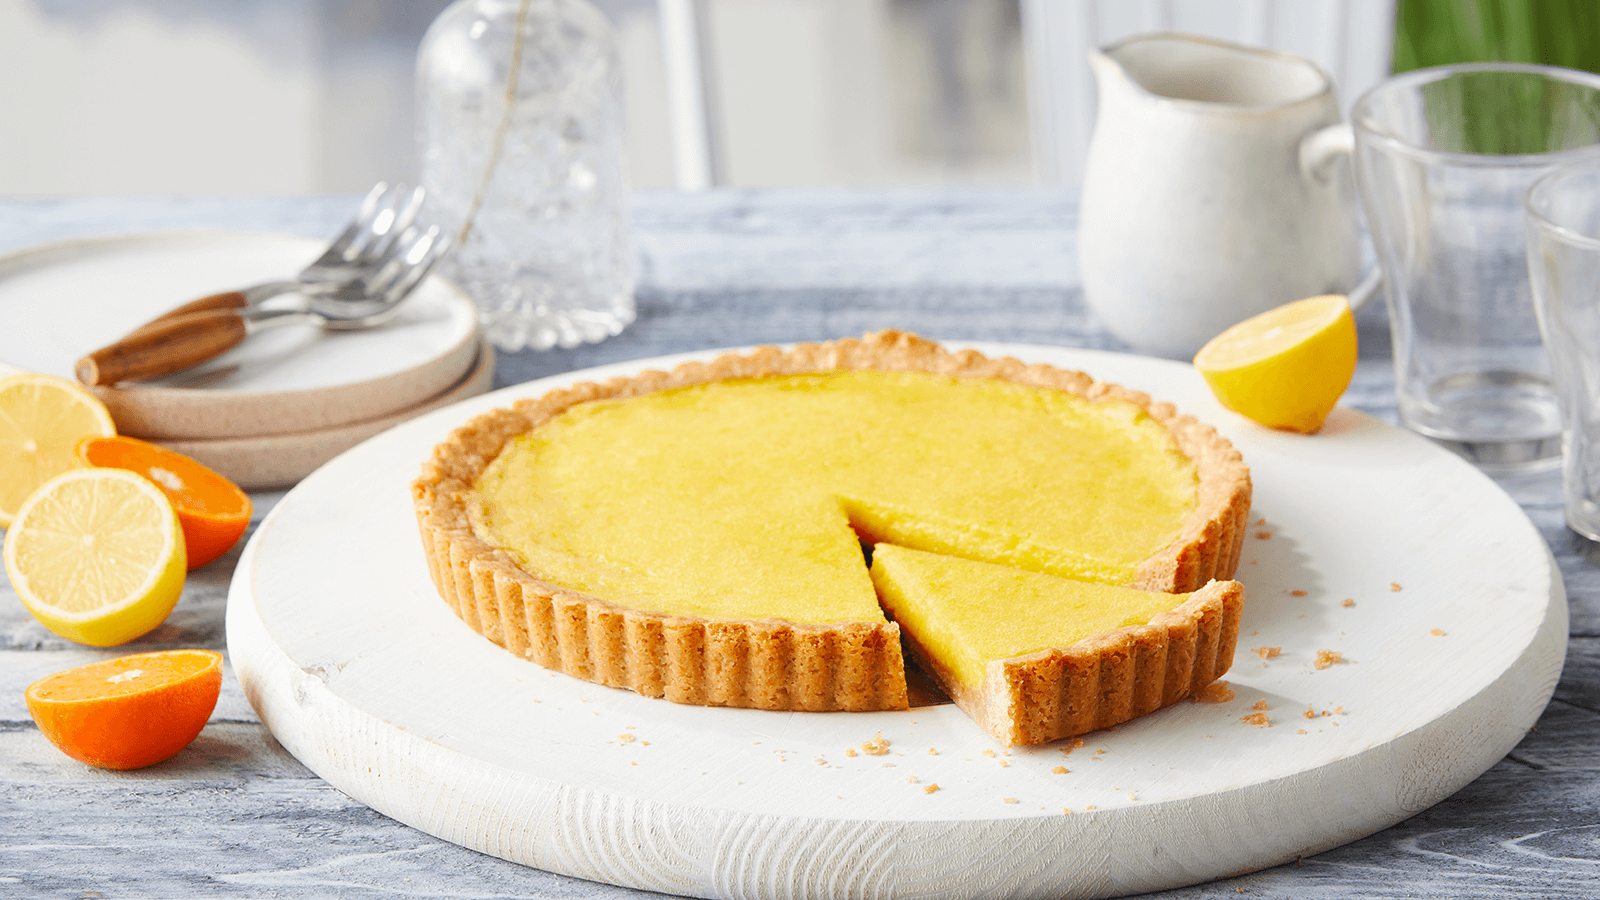 Winter Citrus Tart with Coriander Crust